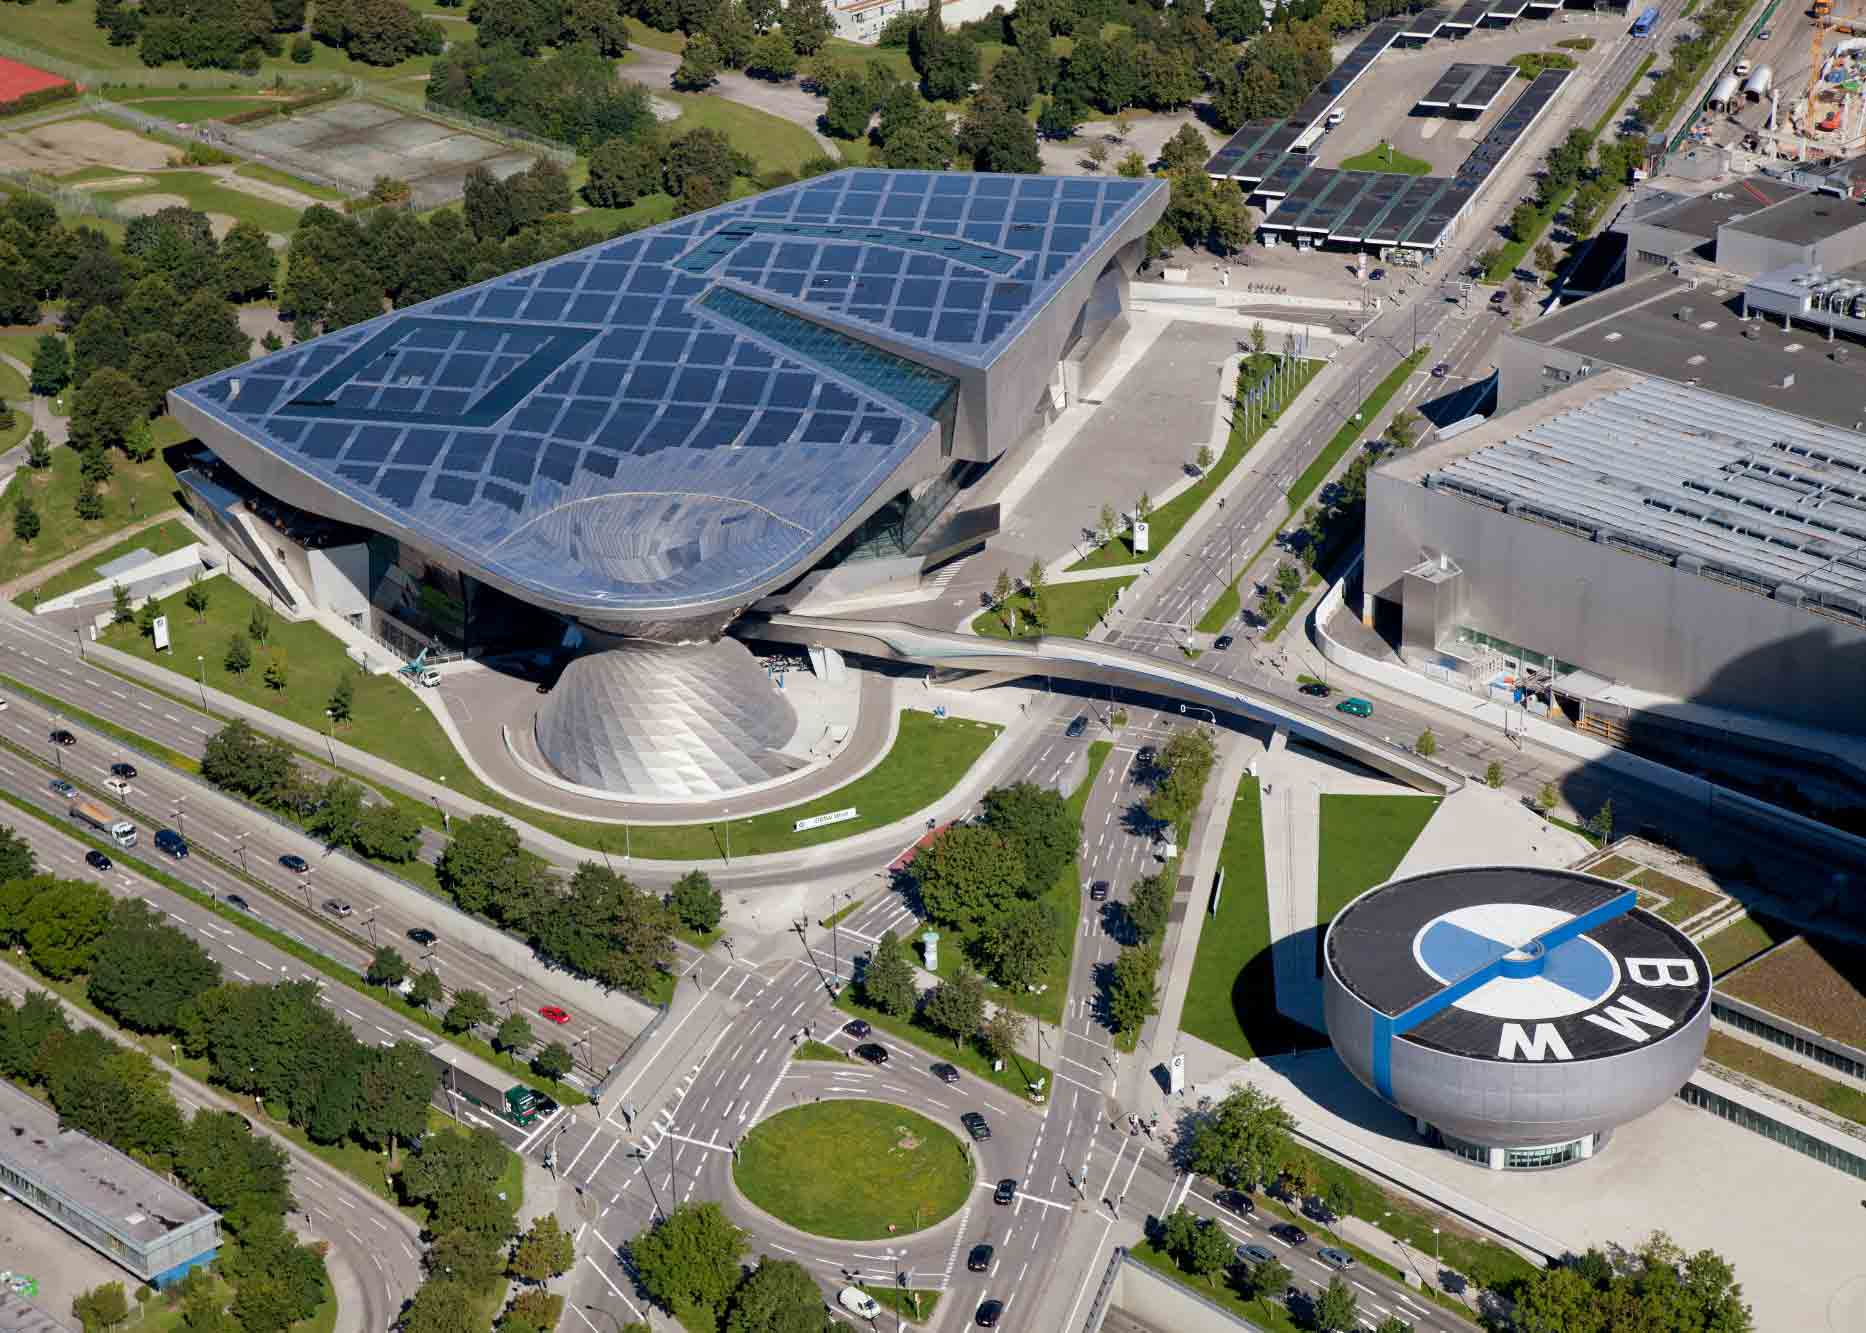 BMW Welt, Germany